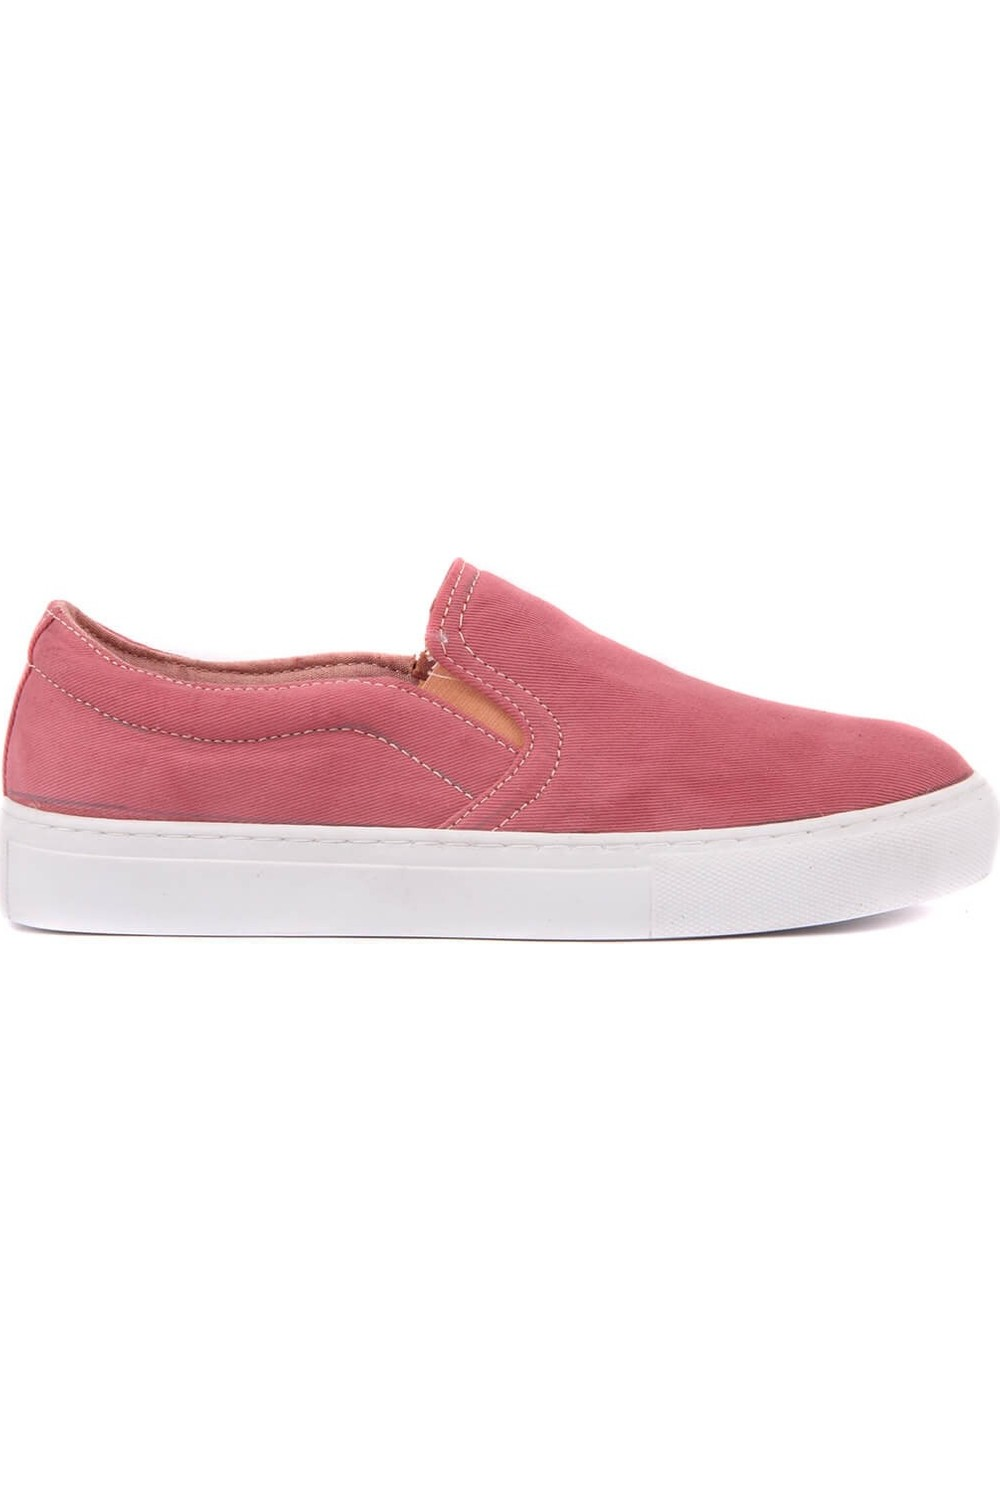 Moxee - Maroon Women's Casual Shoes